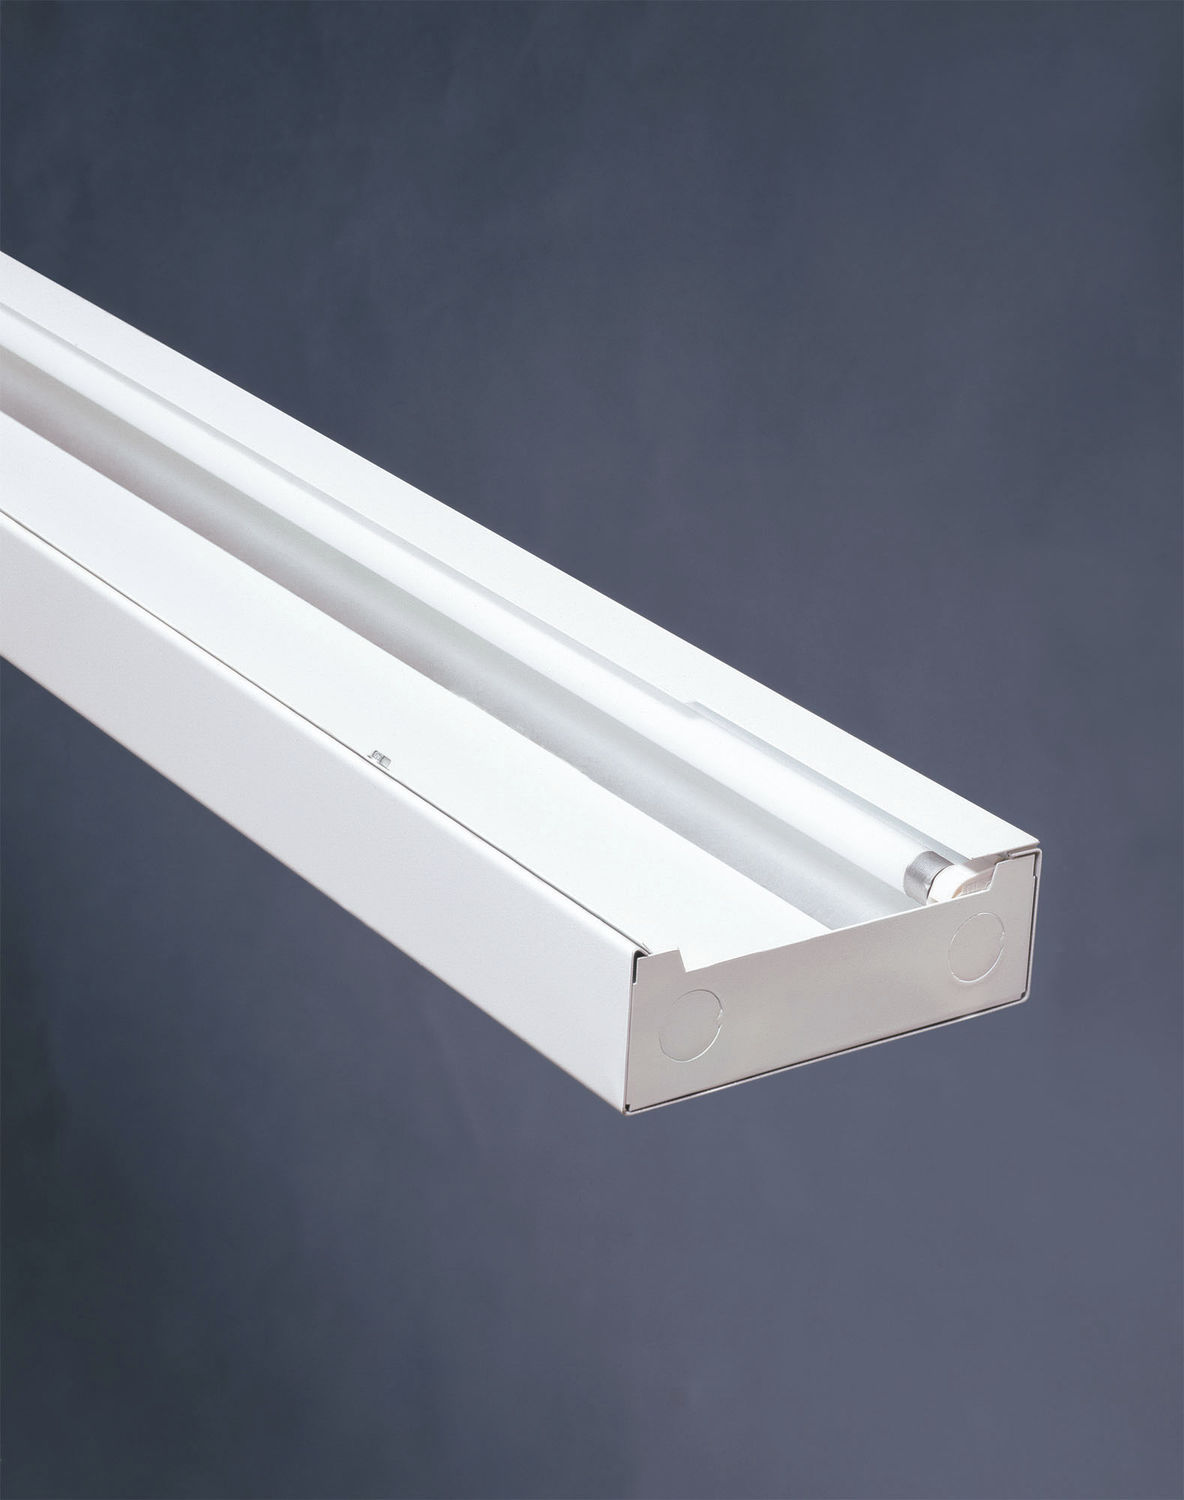 Wall Mounted Lighting Profile Ceiling Fluorescent